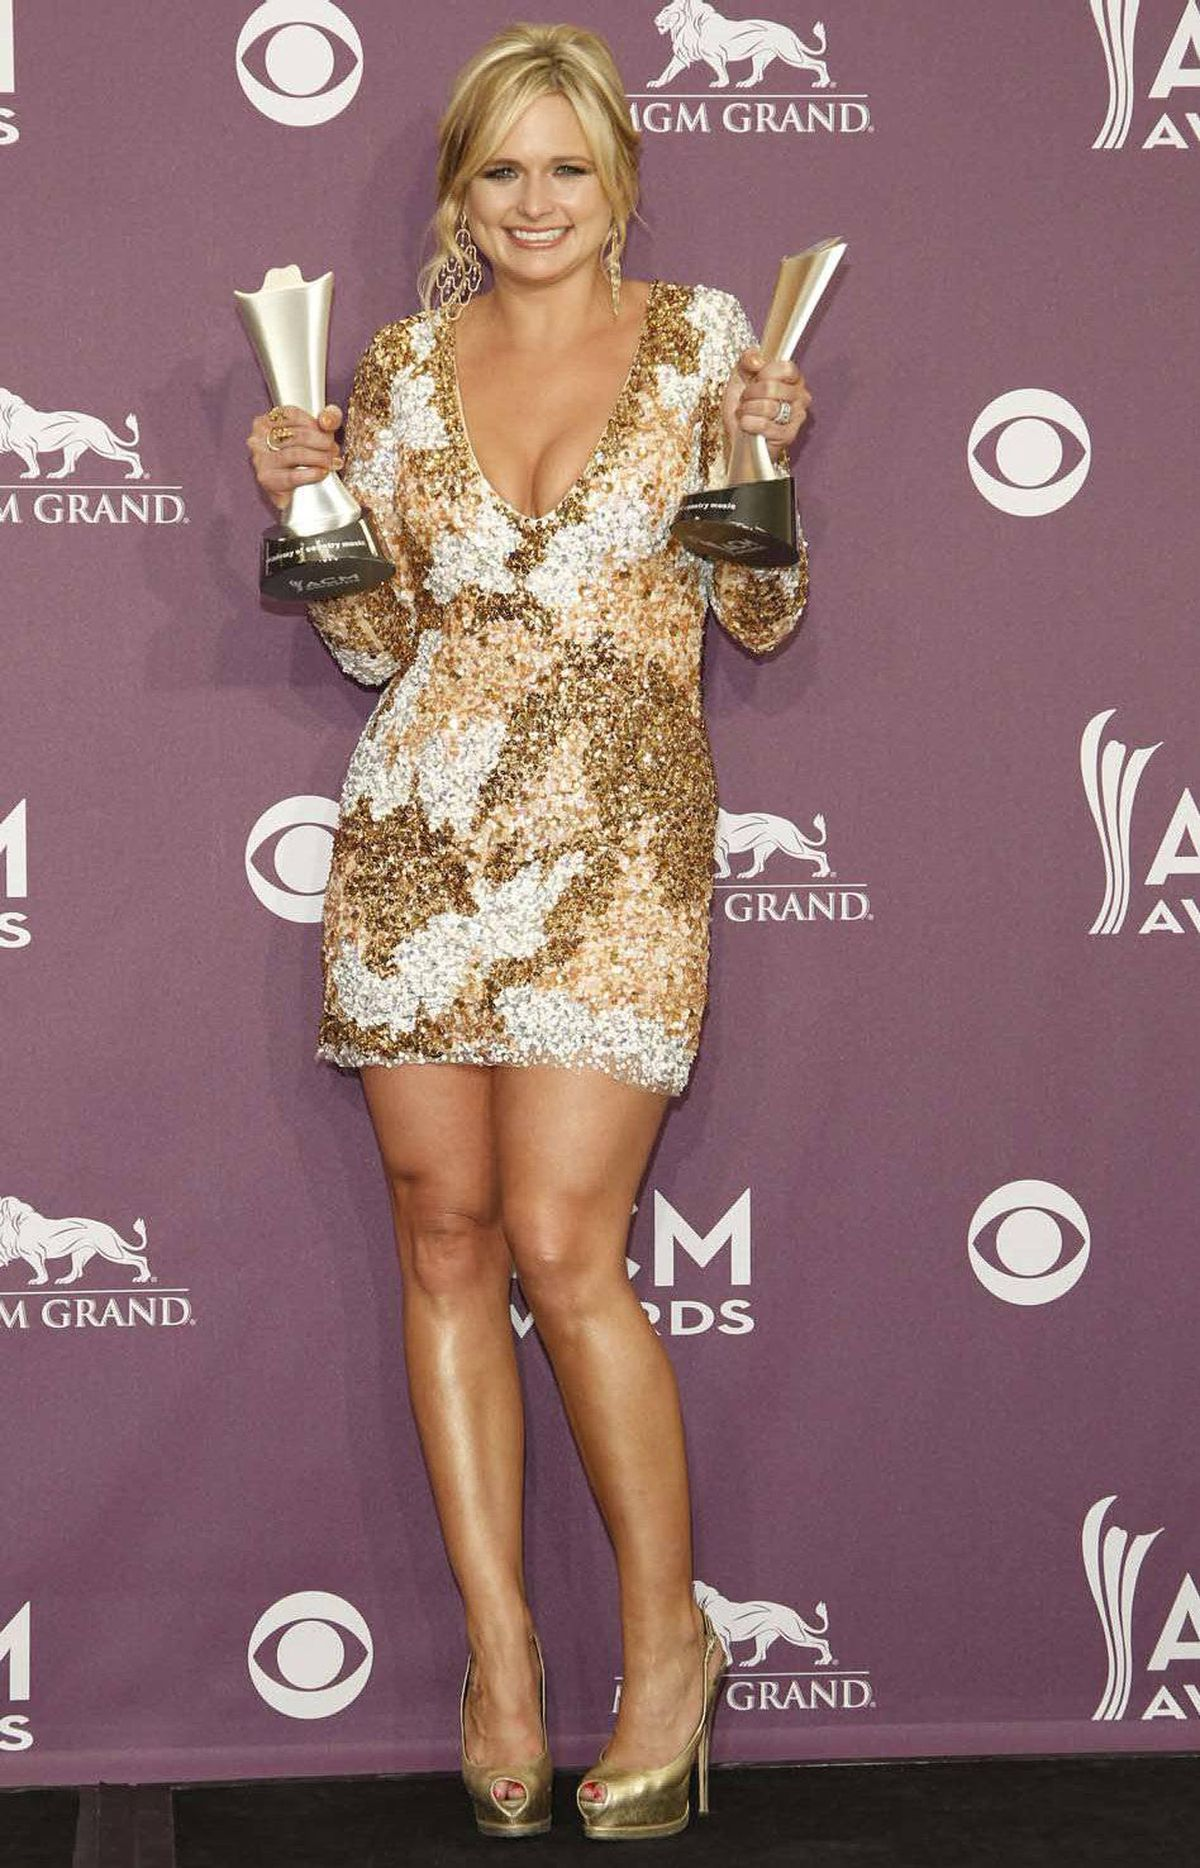 Later, Miranda Lambert proudly displayed her pair of trophies backstage at the Academy of Country Music Awards in Las Vegas on Sunday.